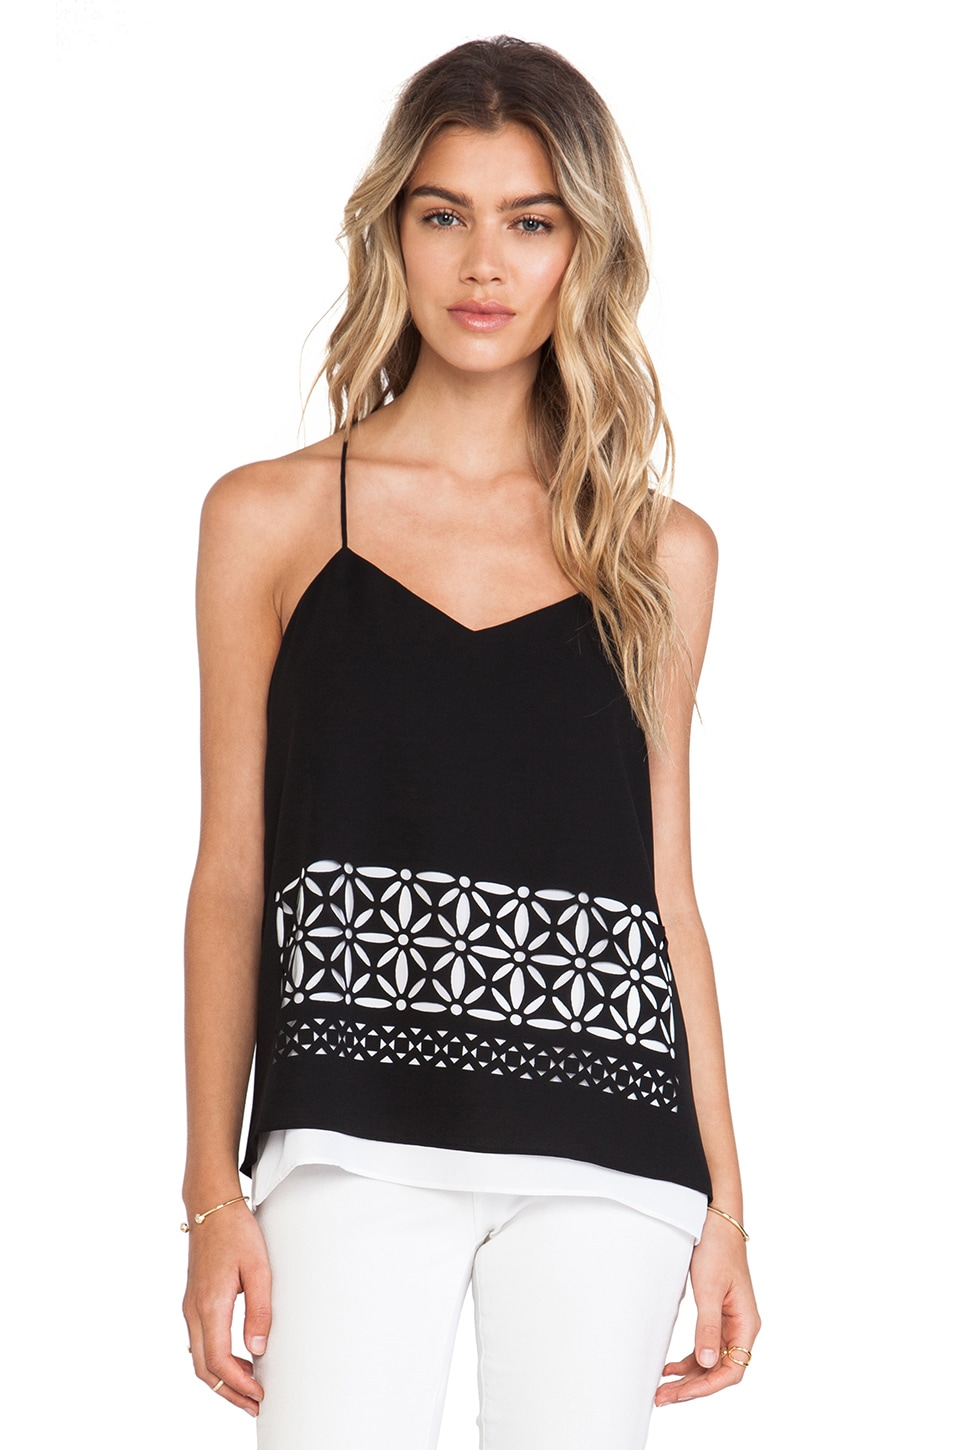 Tibi Fleur Cut Out Double Layered Tank in Black Multi